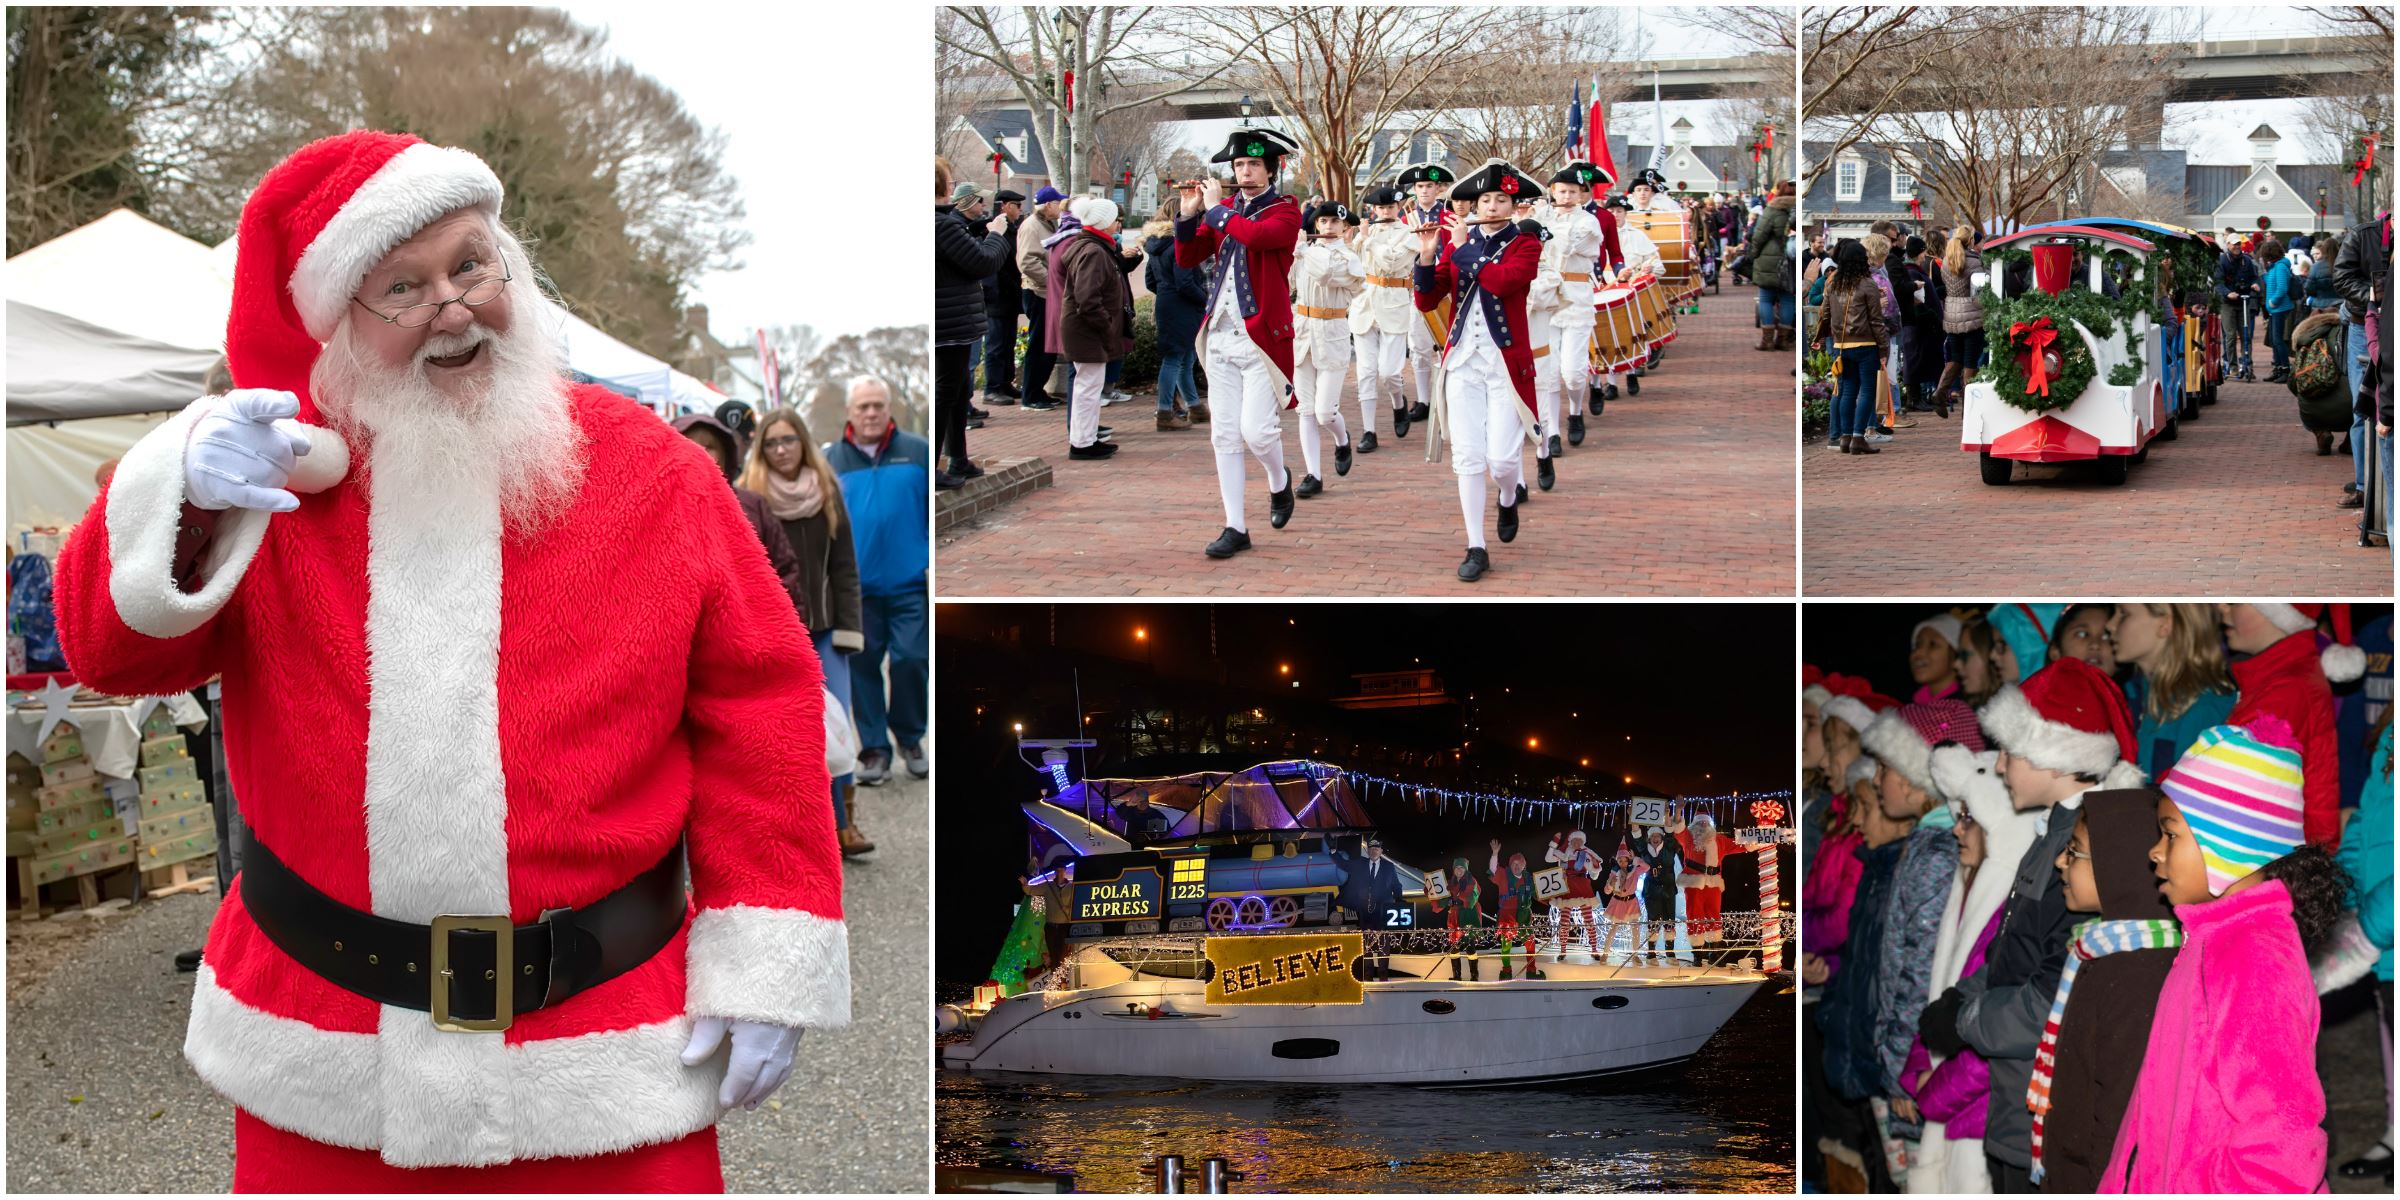 Yorktown Celebrates Christmas collage with santa, fifes and drums, lighted boat parade, and polar ex